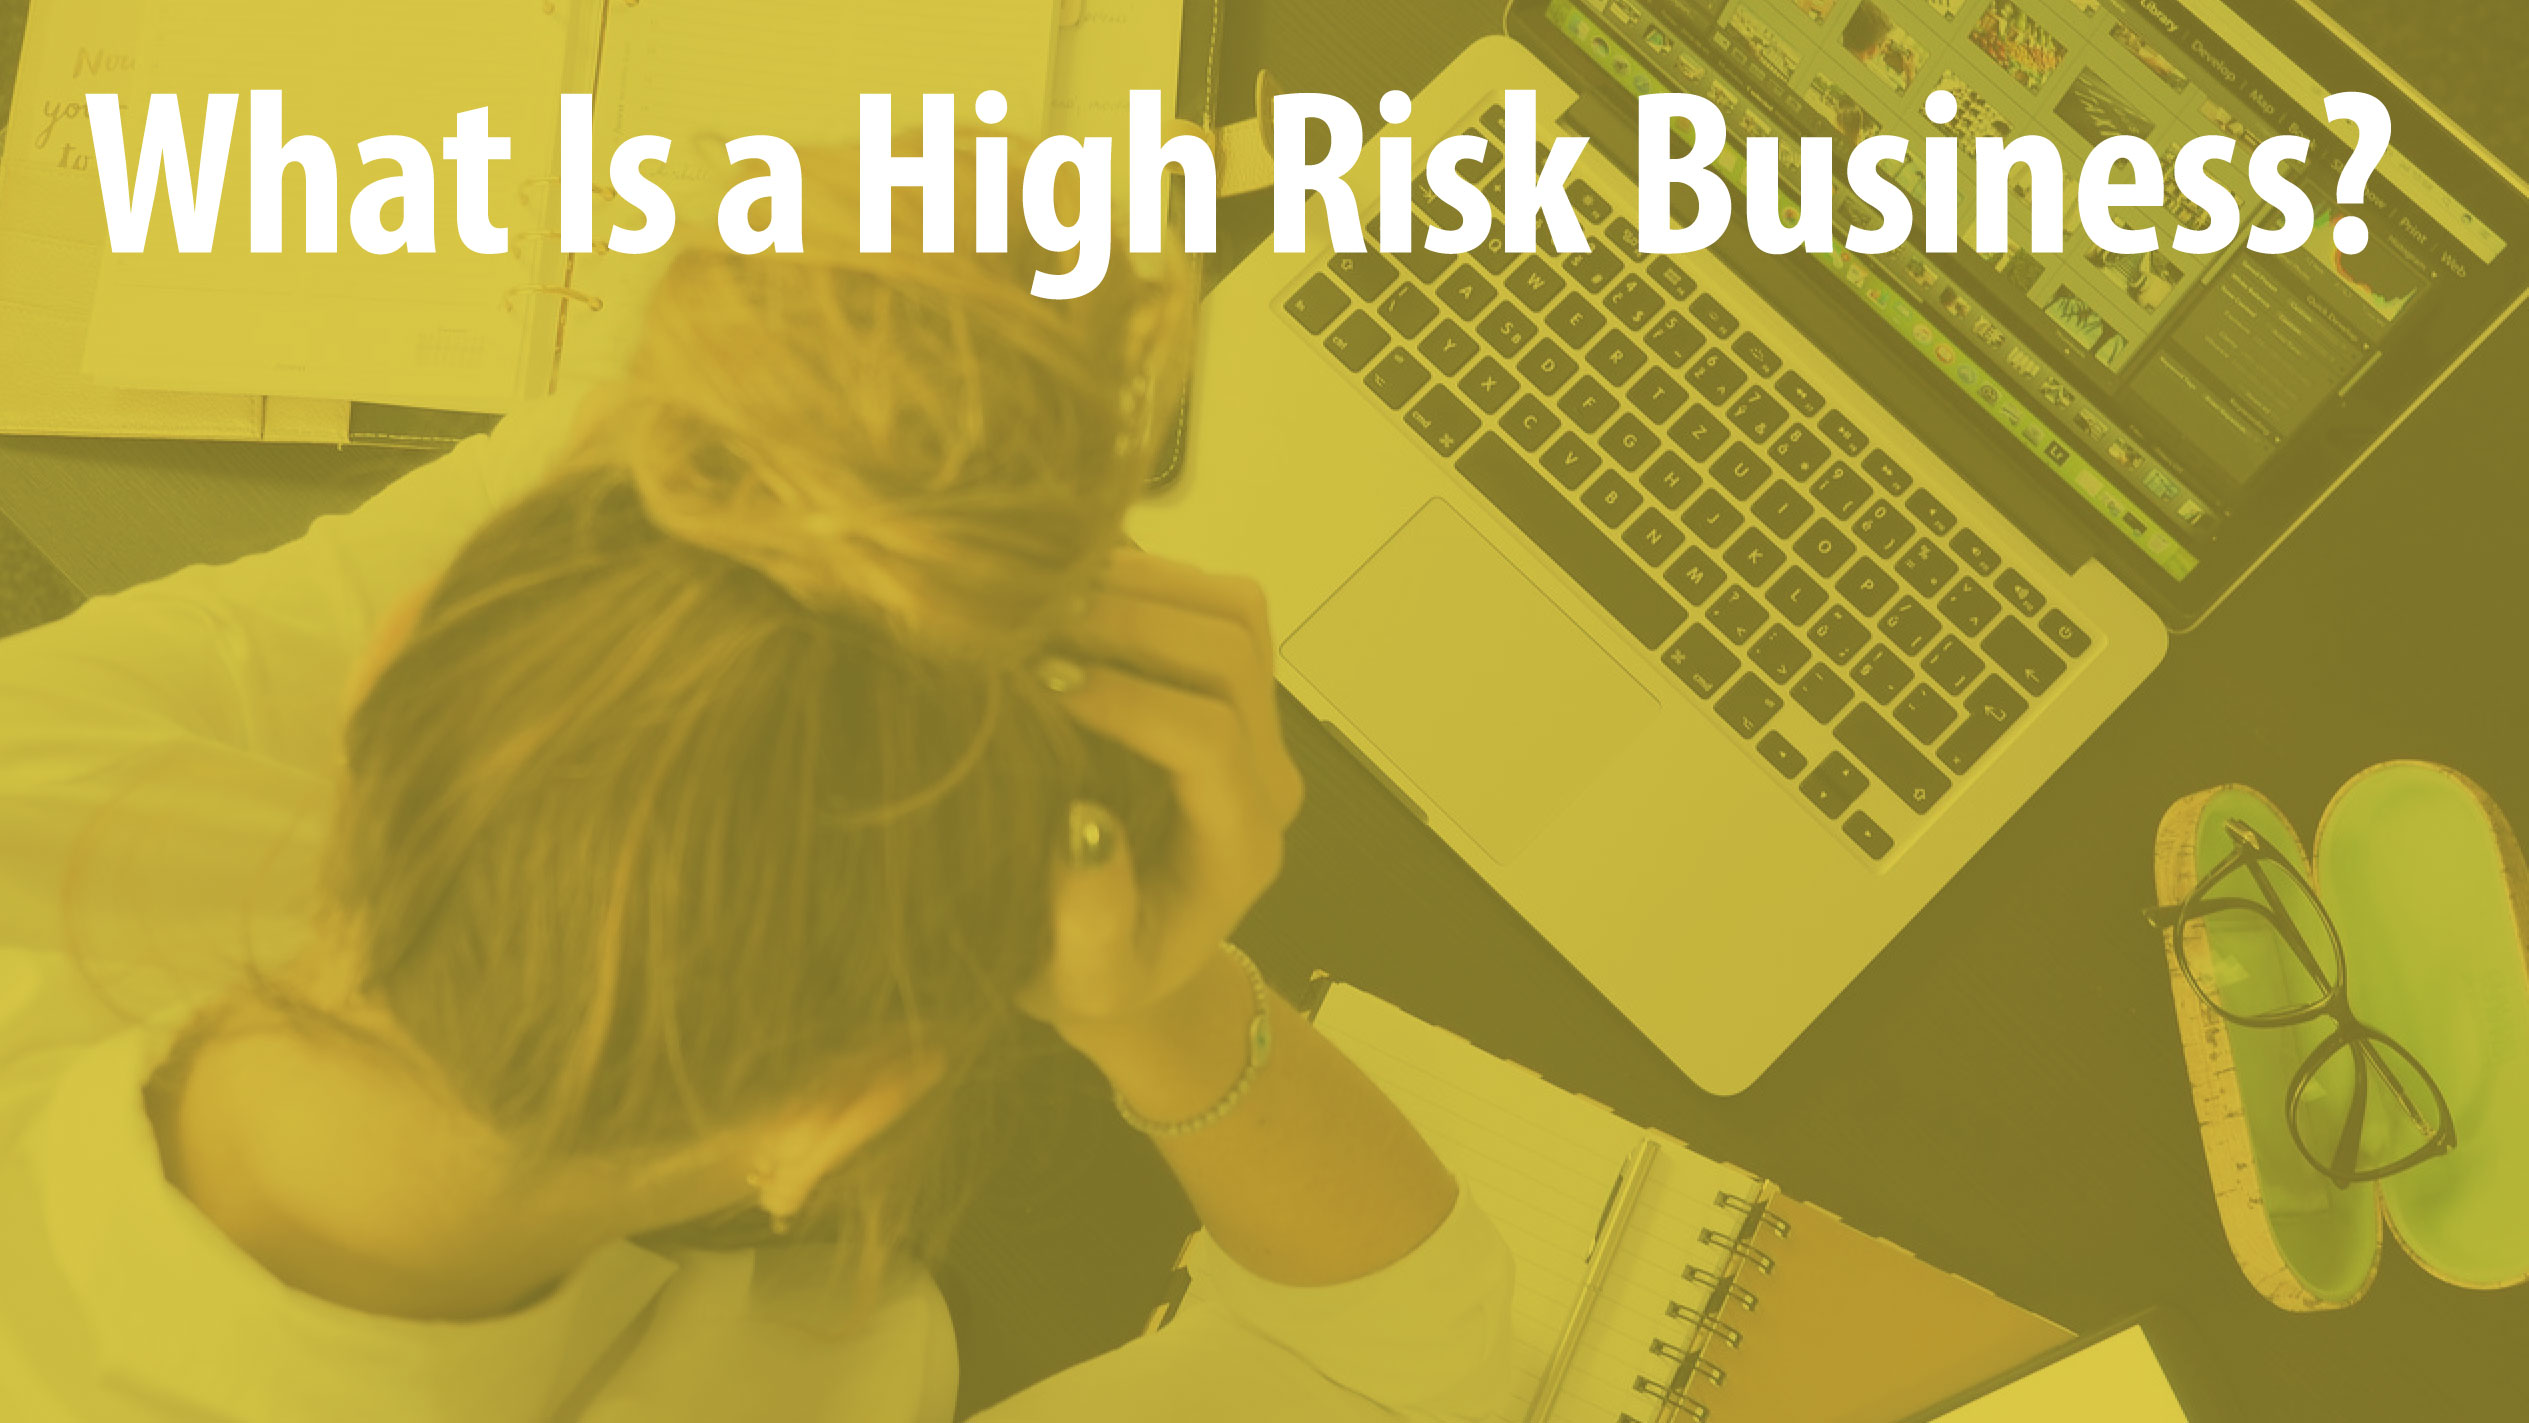 What Is a High Risk Business?